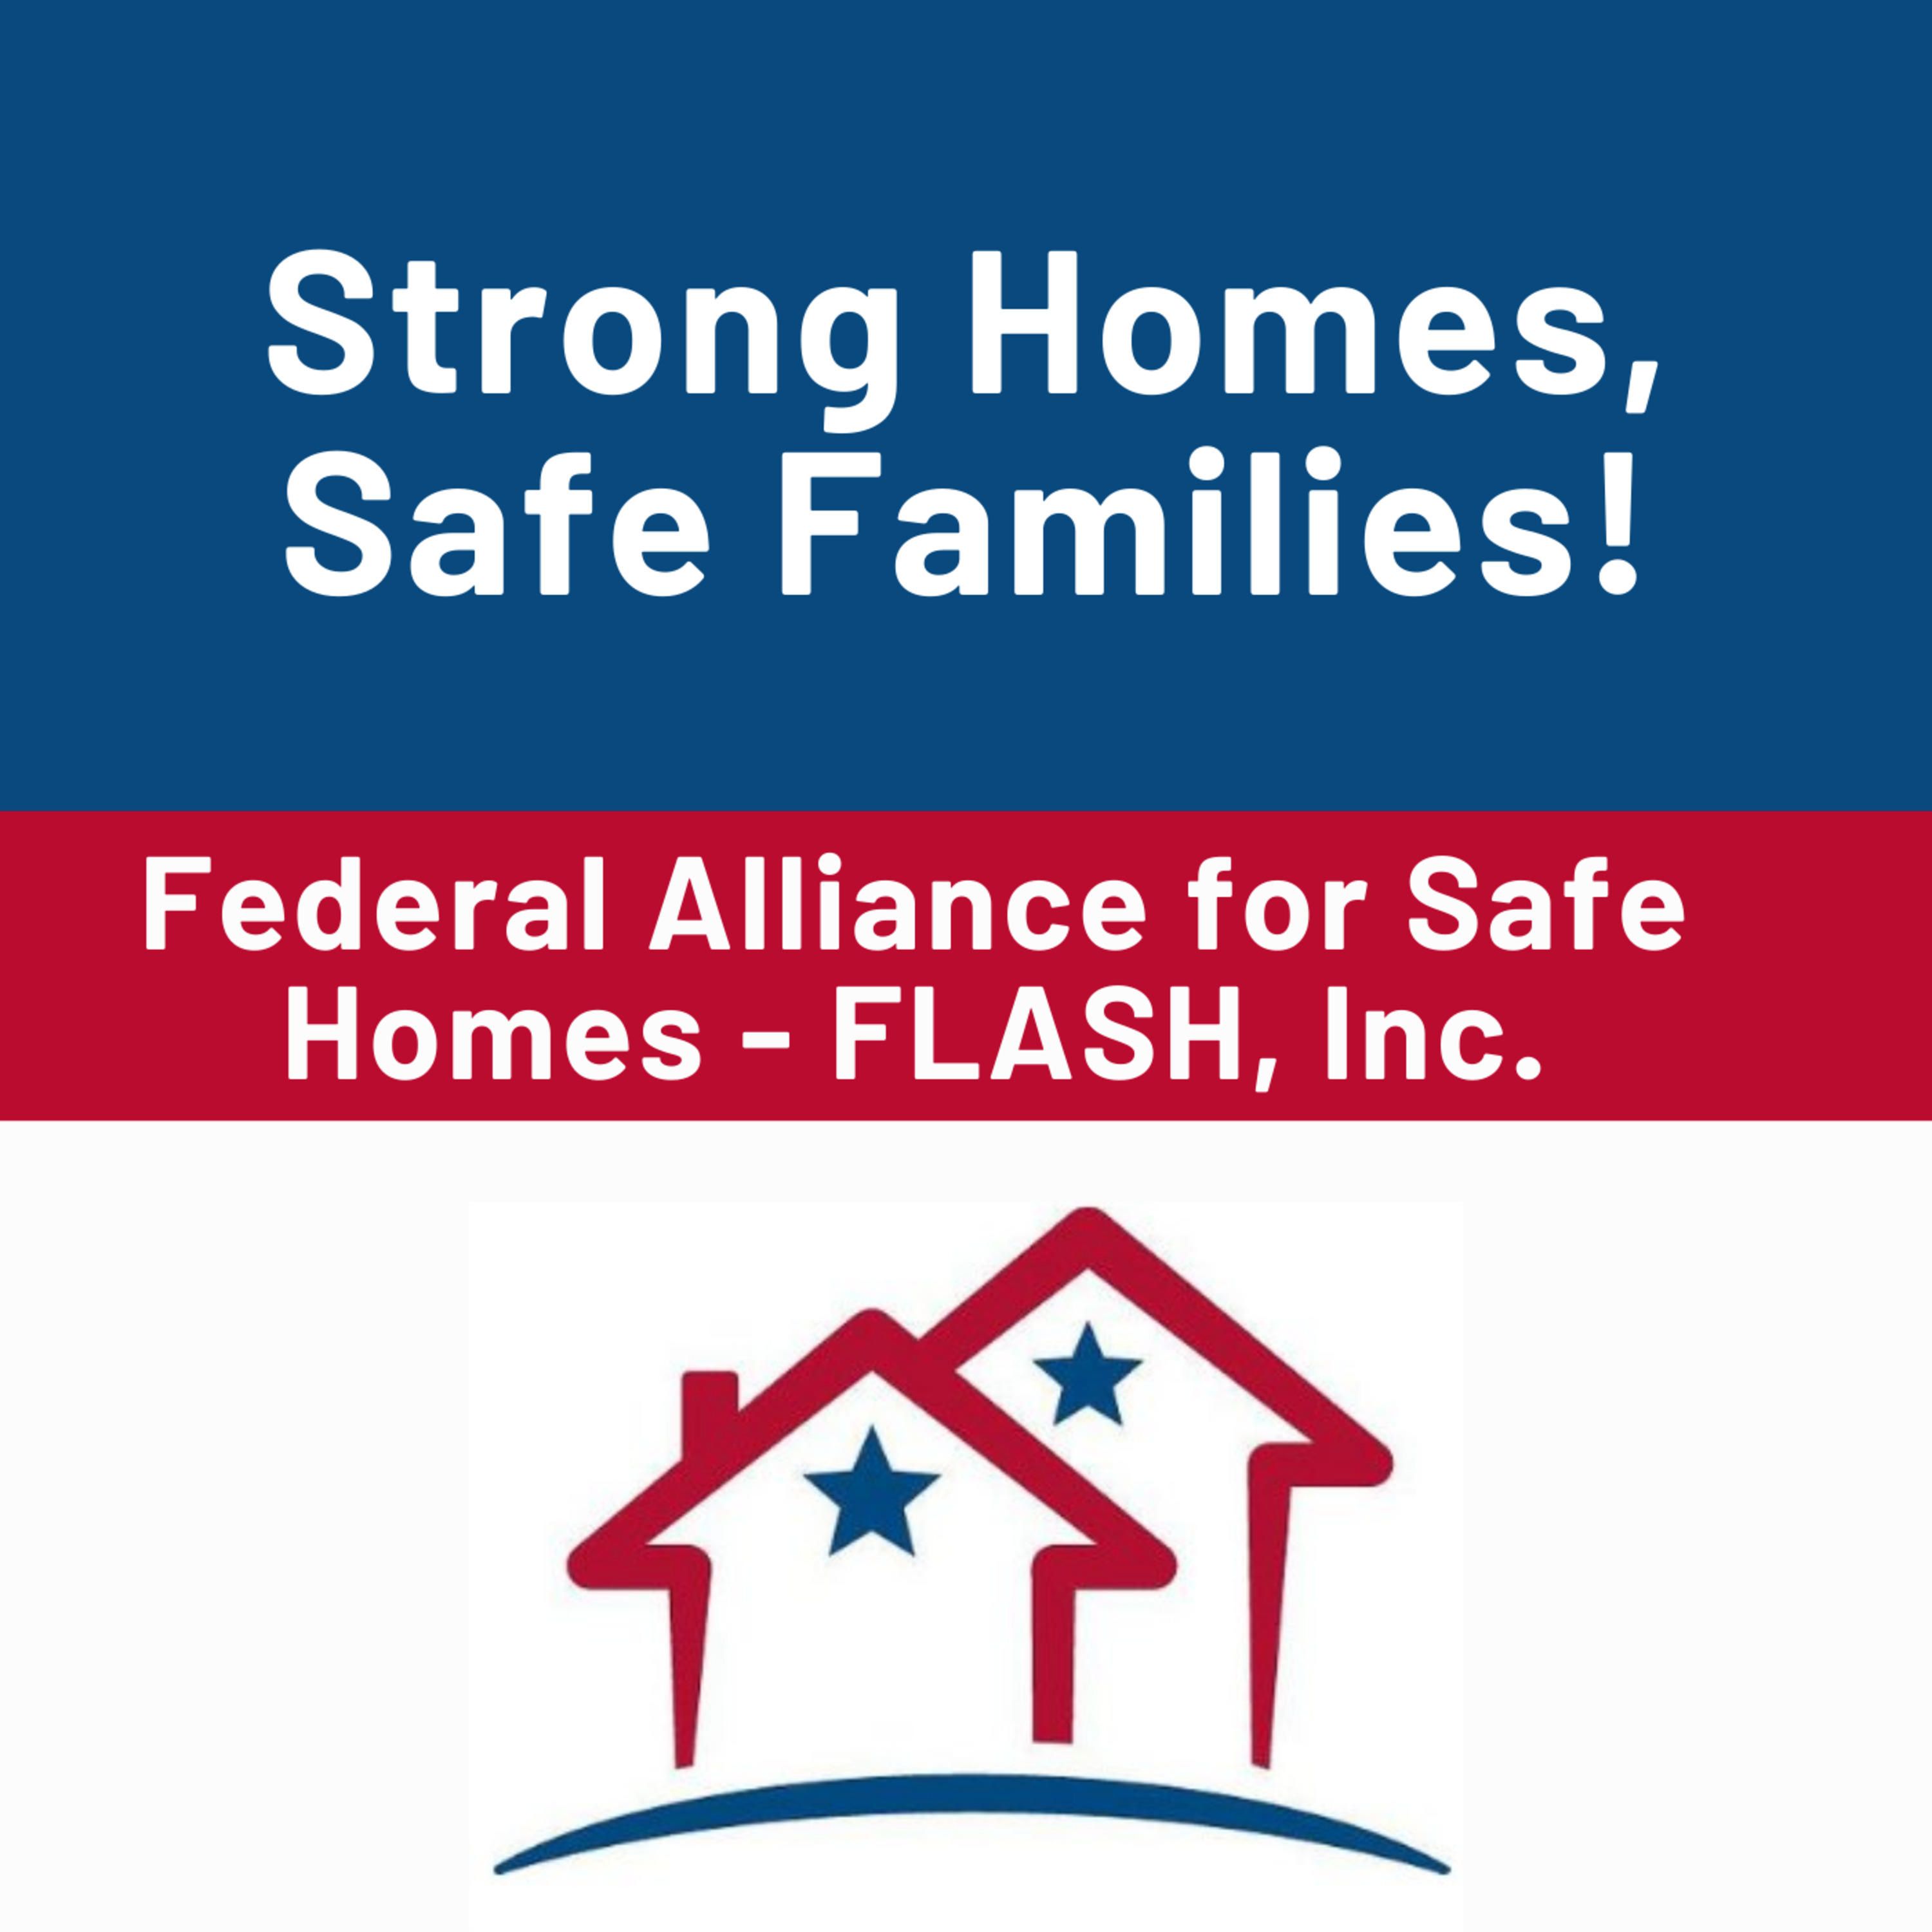 Strong Homes, Safe Families!